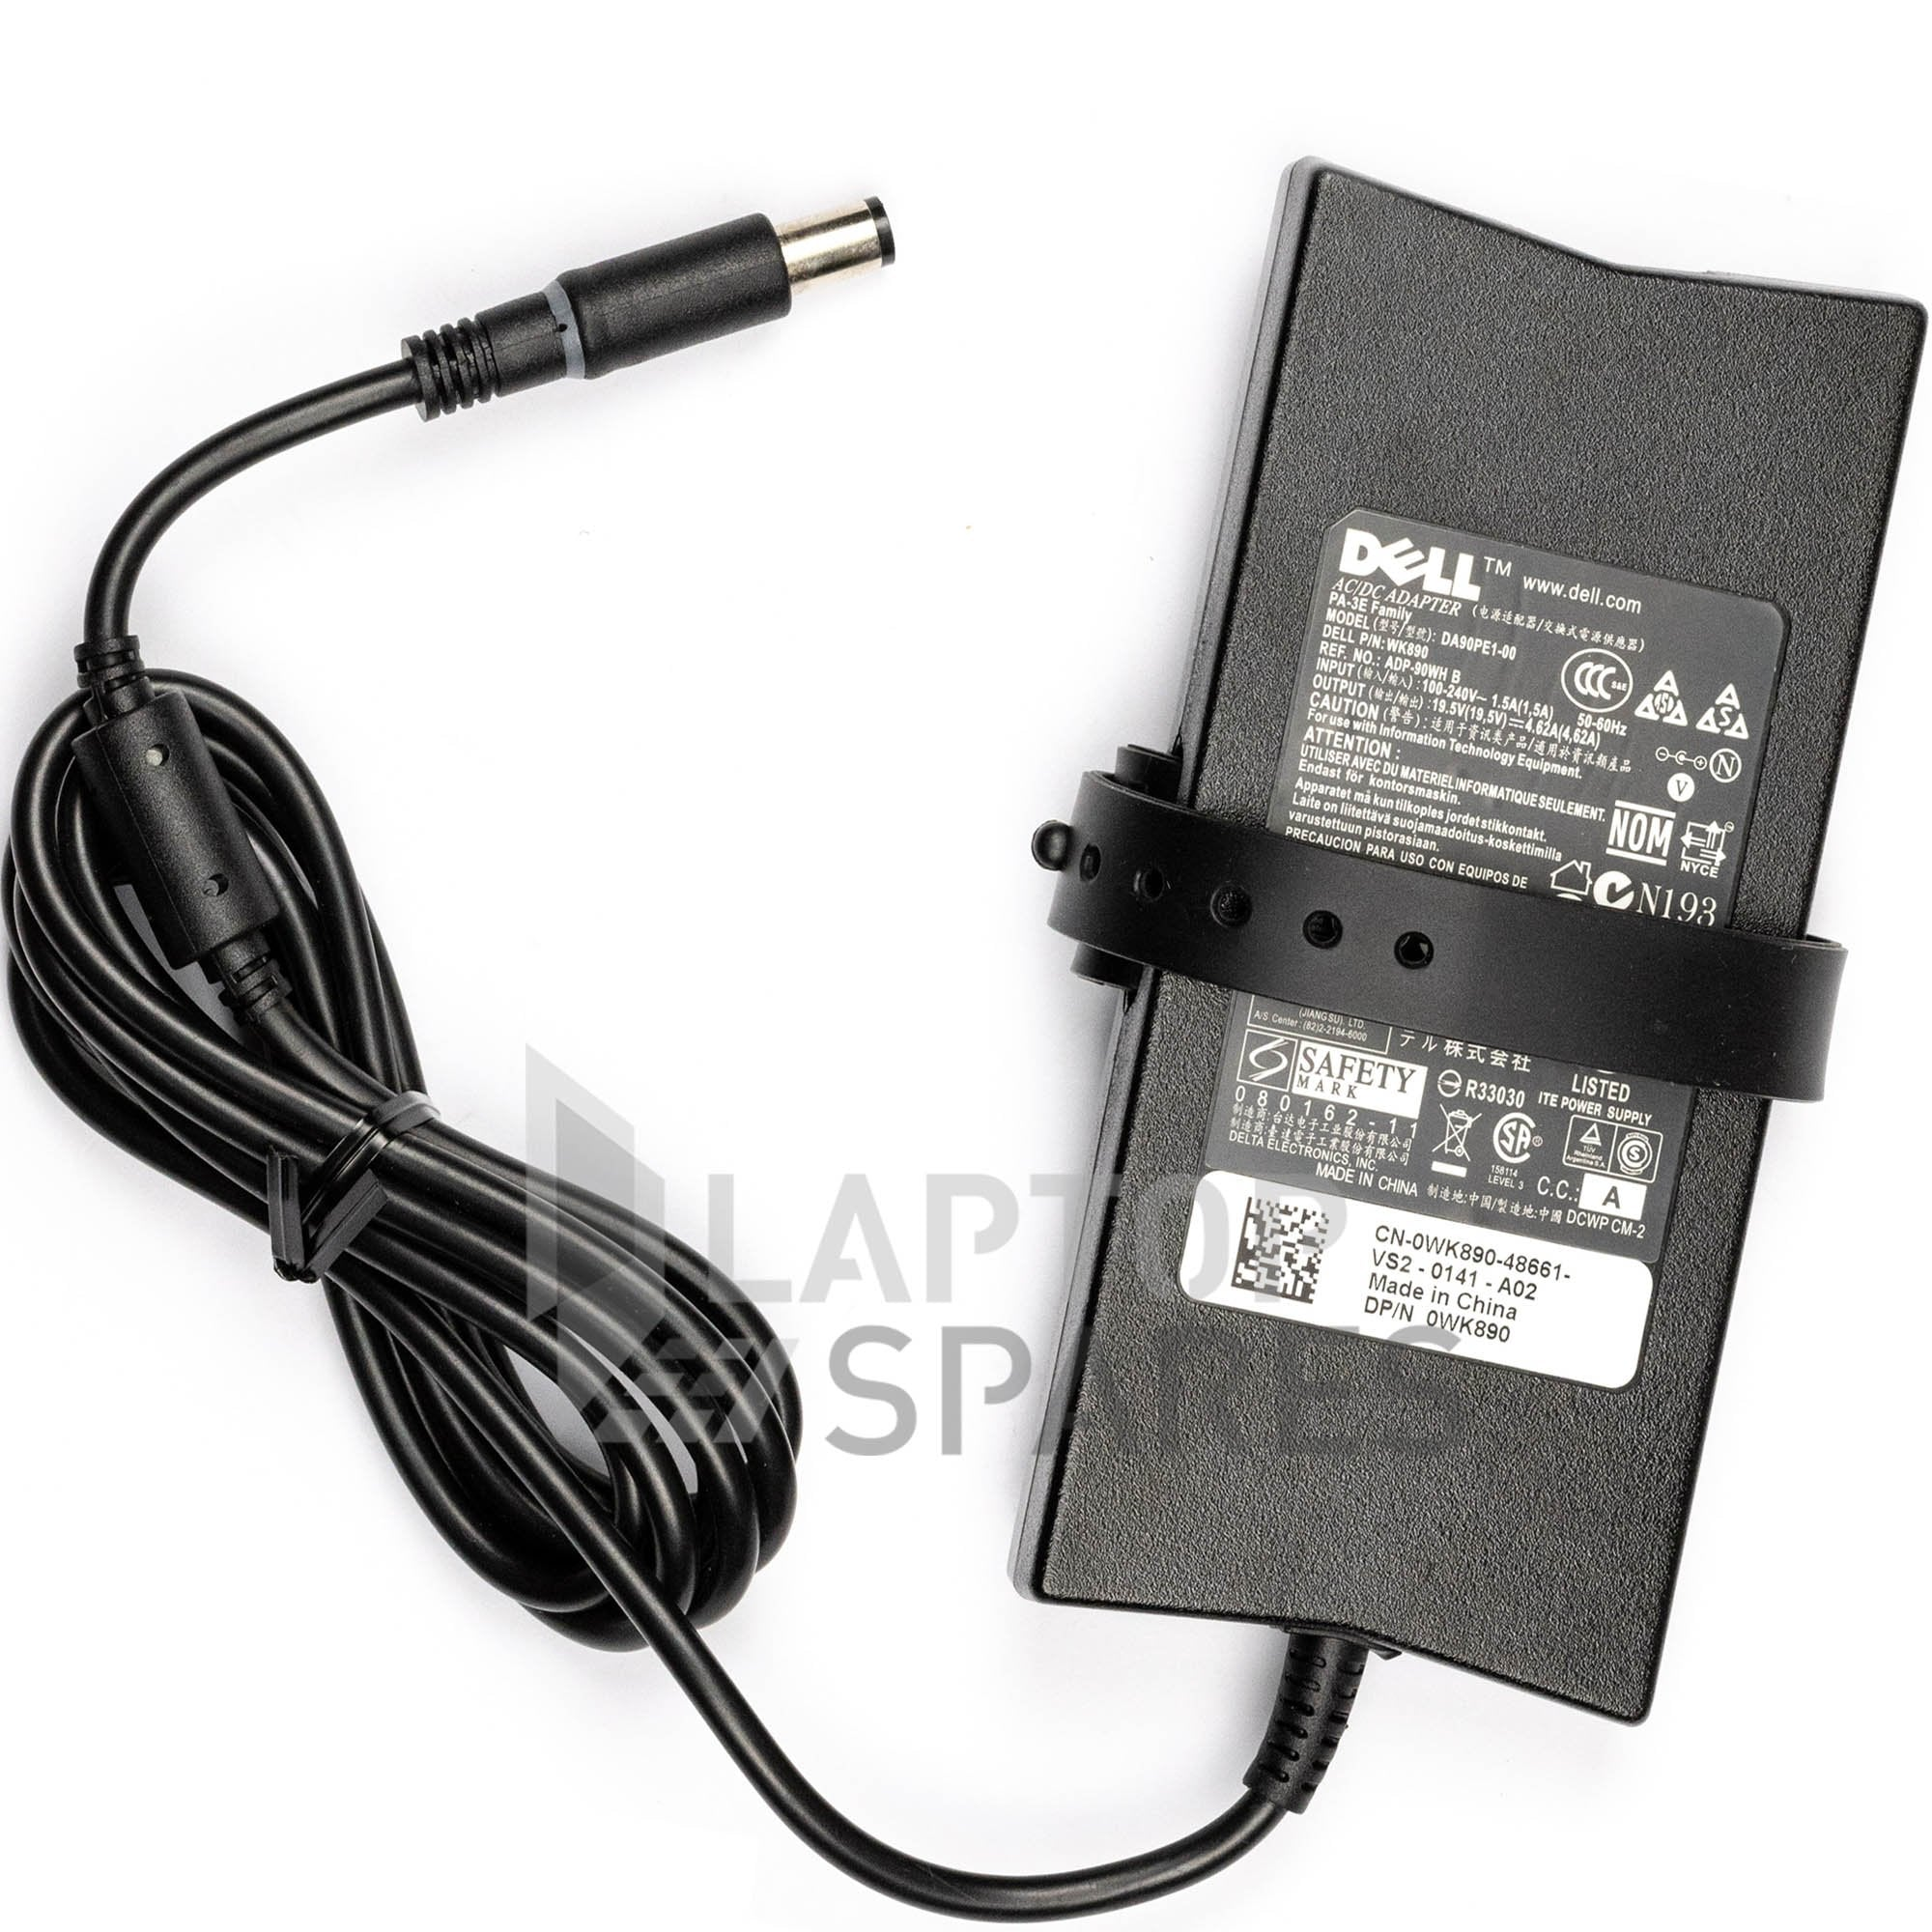 Dell Vostro 1500 1510 1520 Laptop Slim AC Adapter Charger